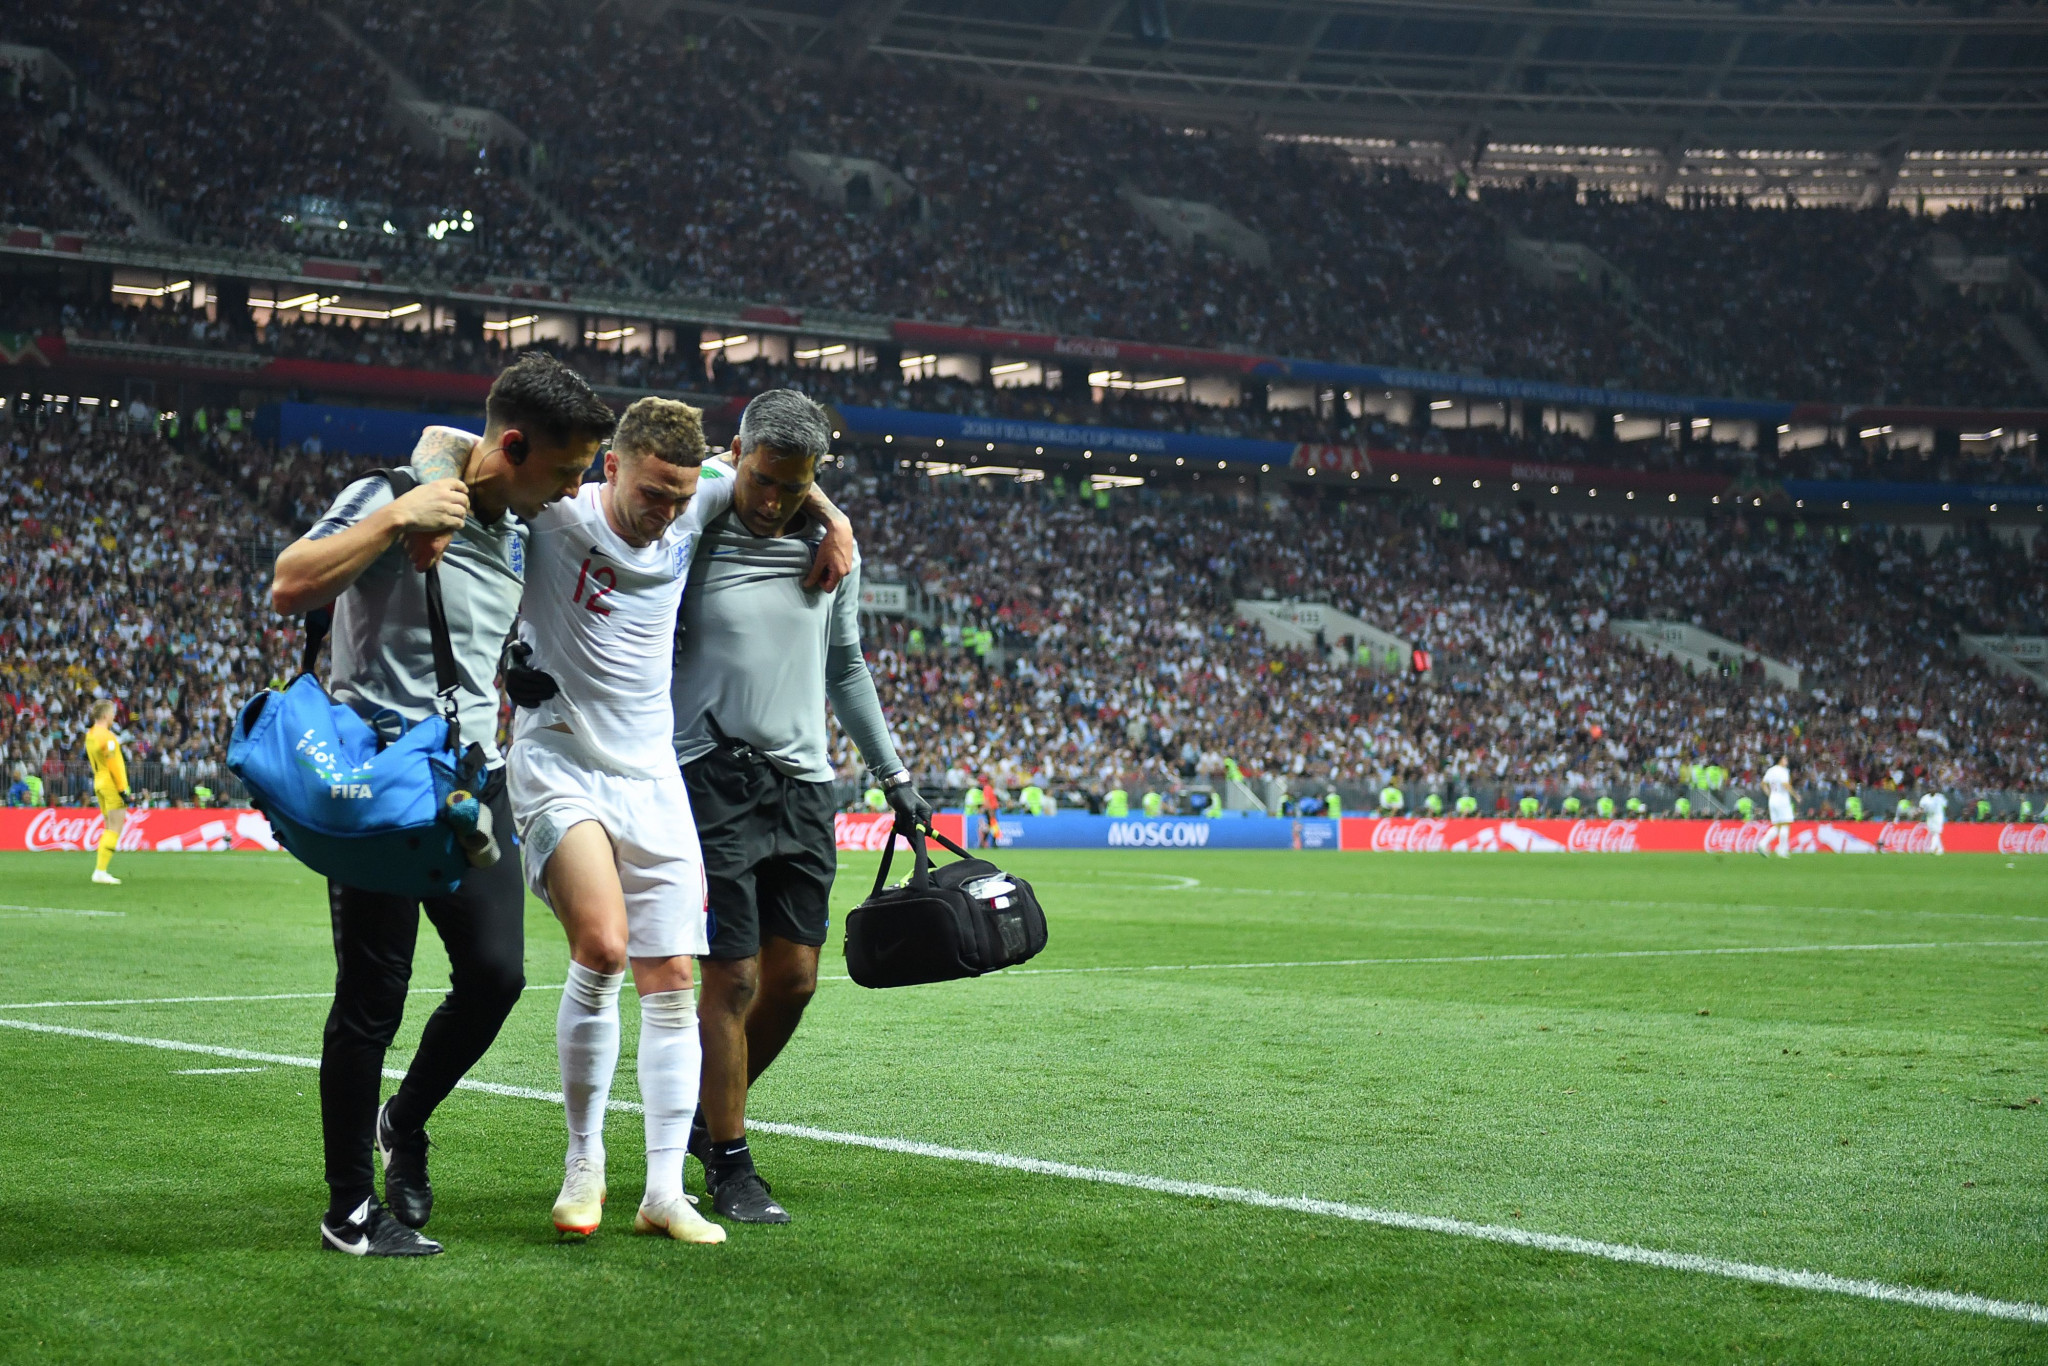 Kieran Trippier then hobbled off in extra time with a groin injury ©Getty Images